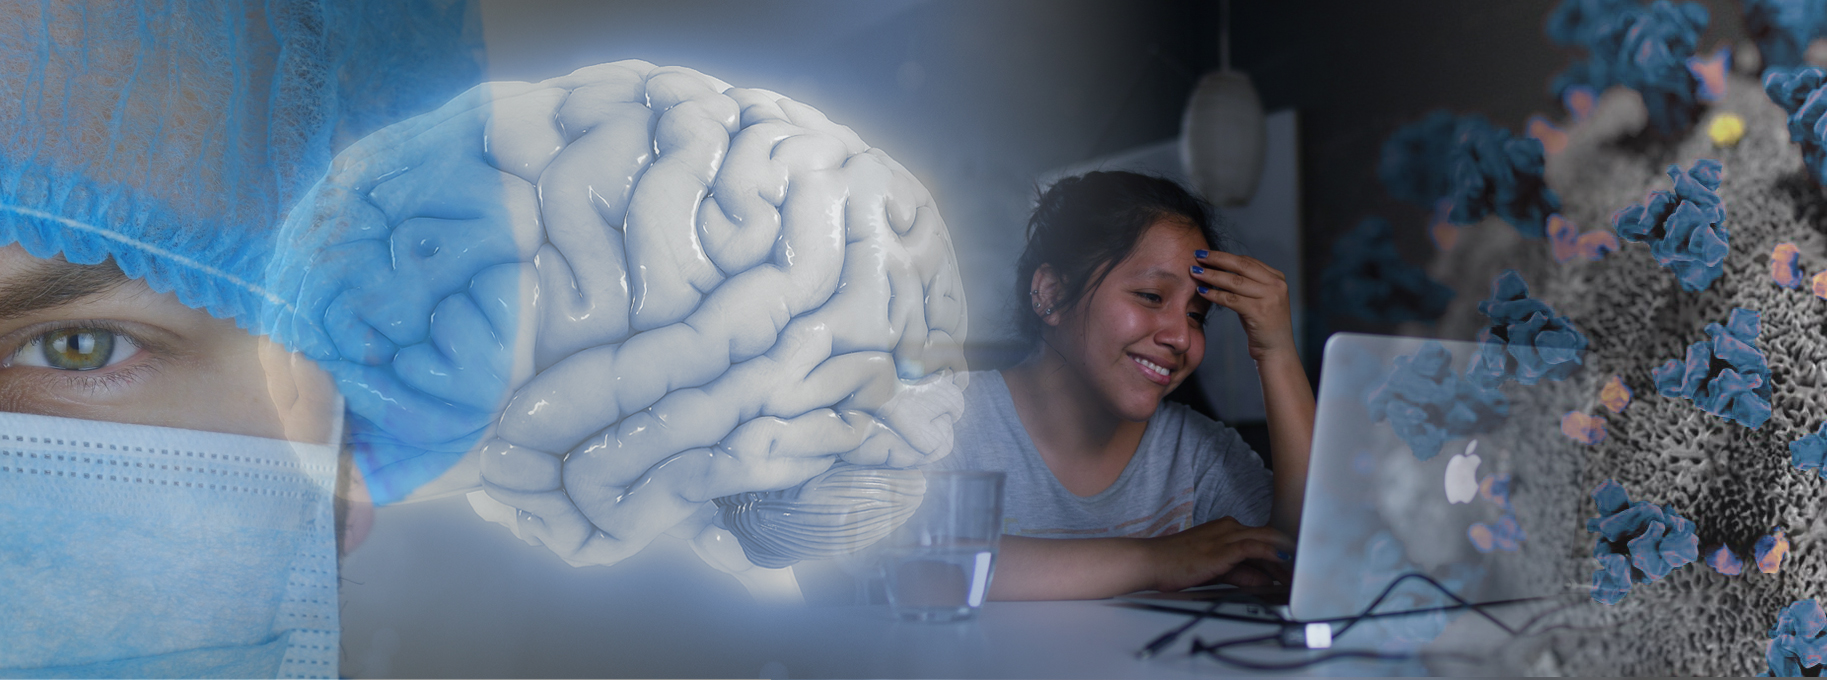 A banner featuring a physician wearing a protective mask, a woman using a computer for a remote therapy session, a 3D model of a brain, and a corona virus